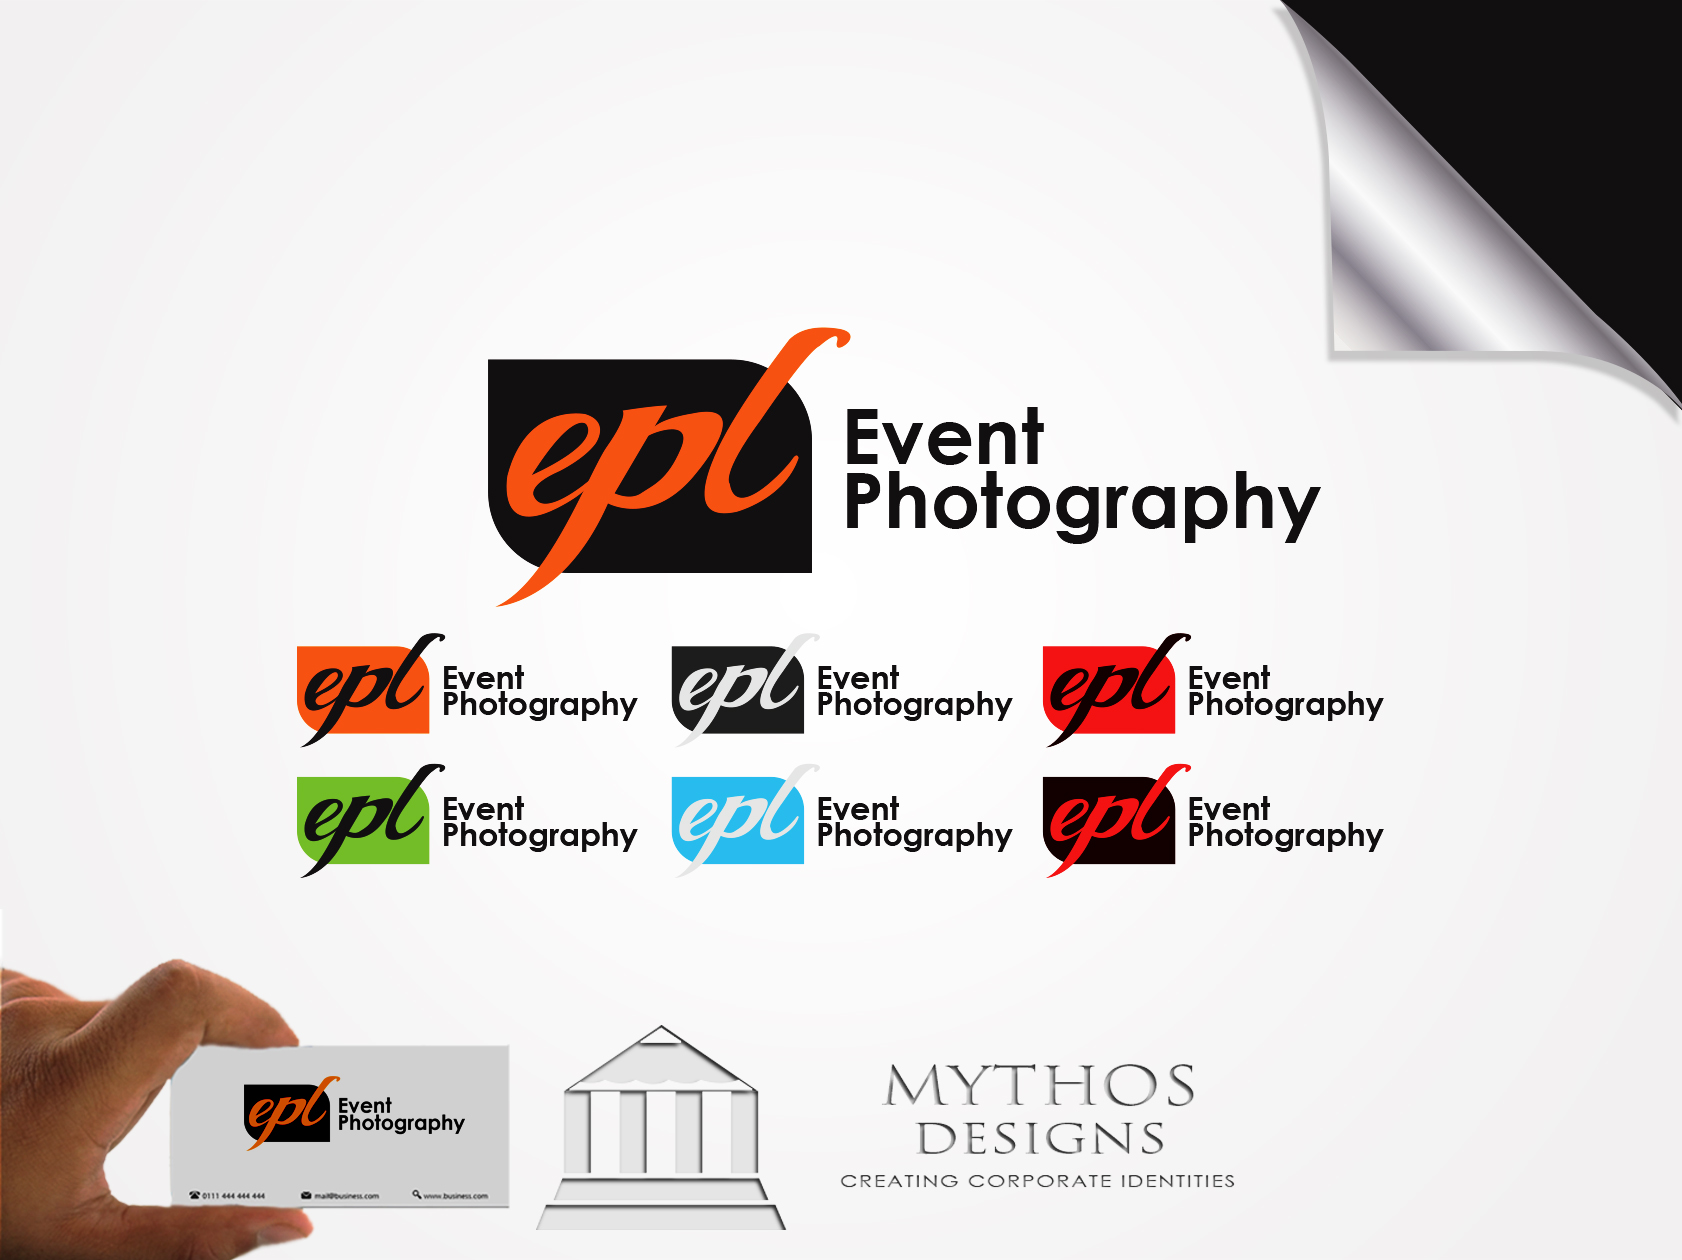 Logo Design by Mythos Designs - Entry No. 180 in the Logo Design Contest New Logo Design for EPL Event Photography.